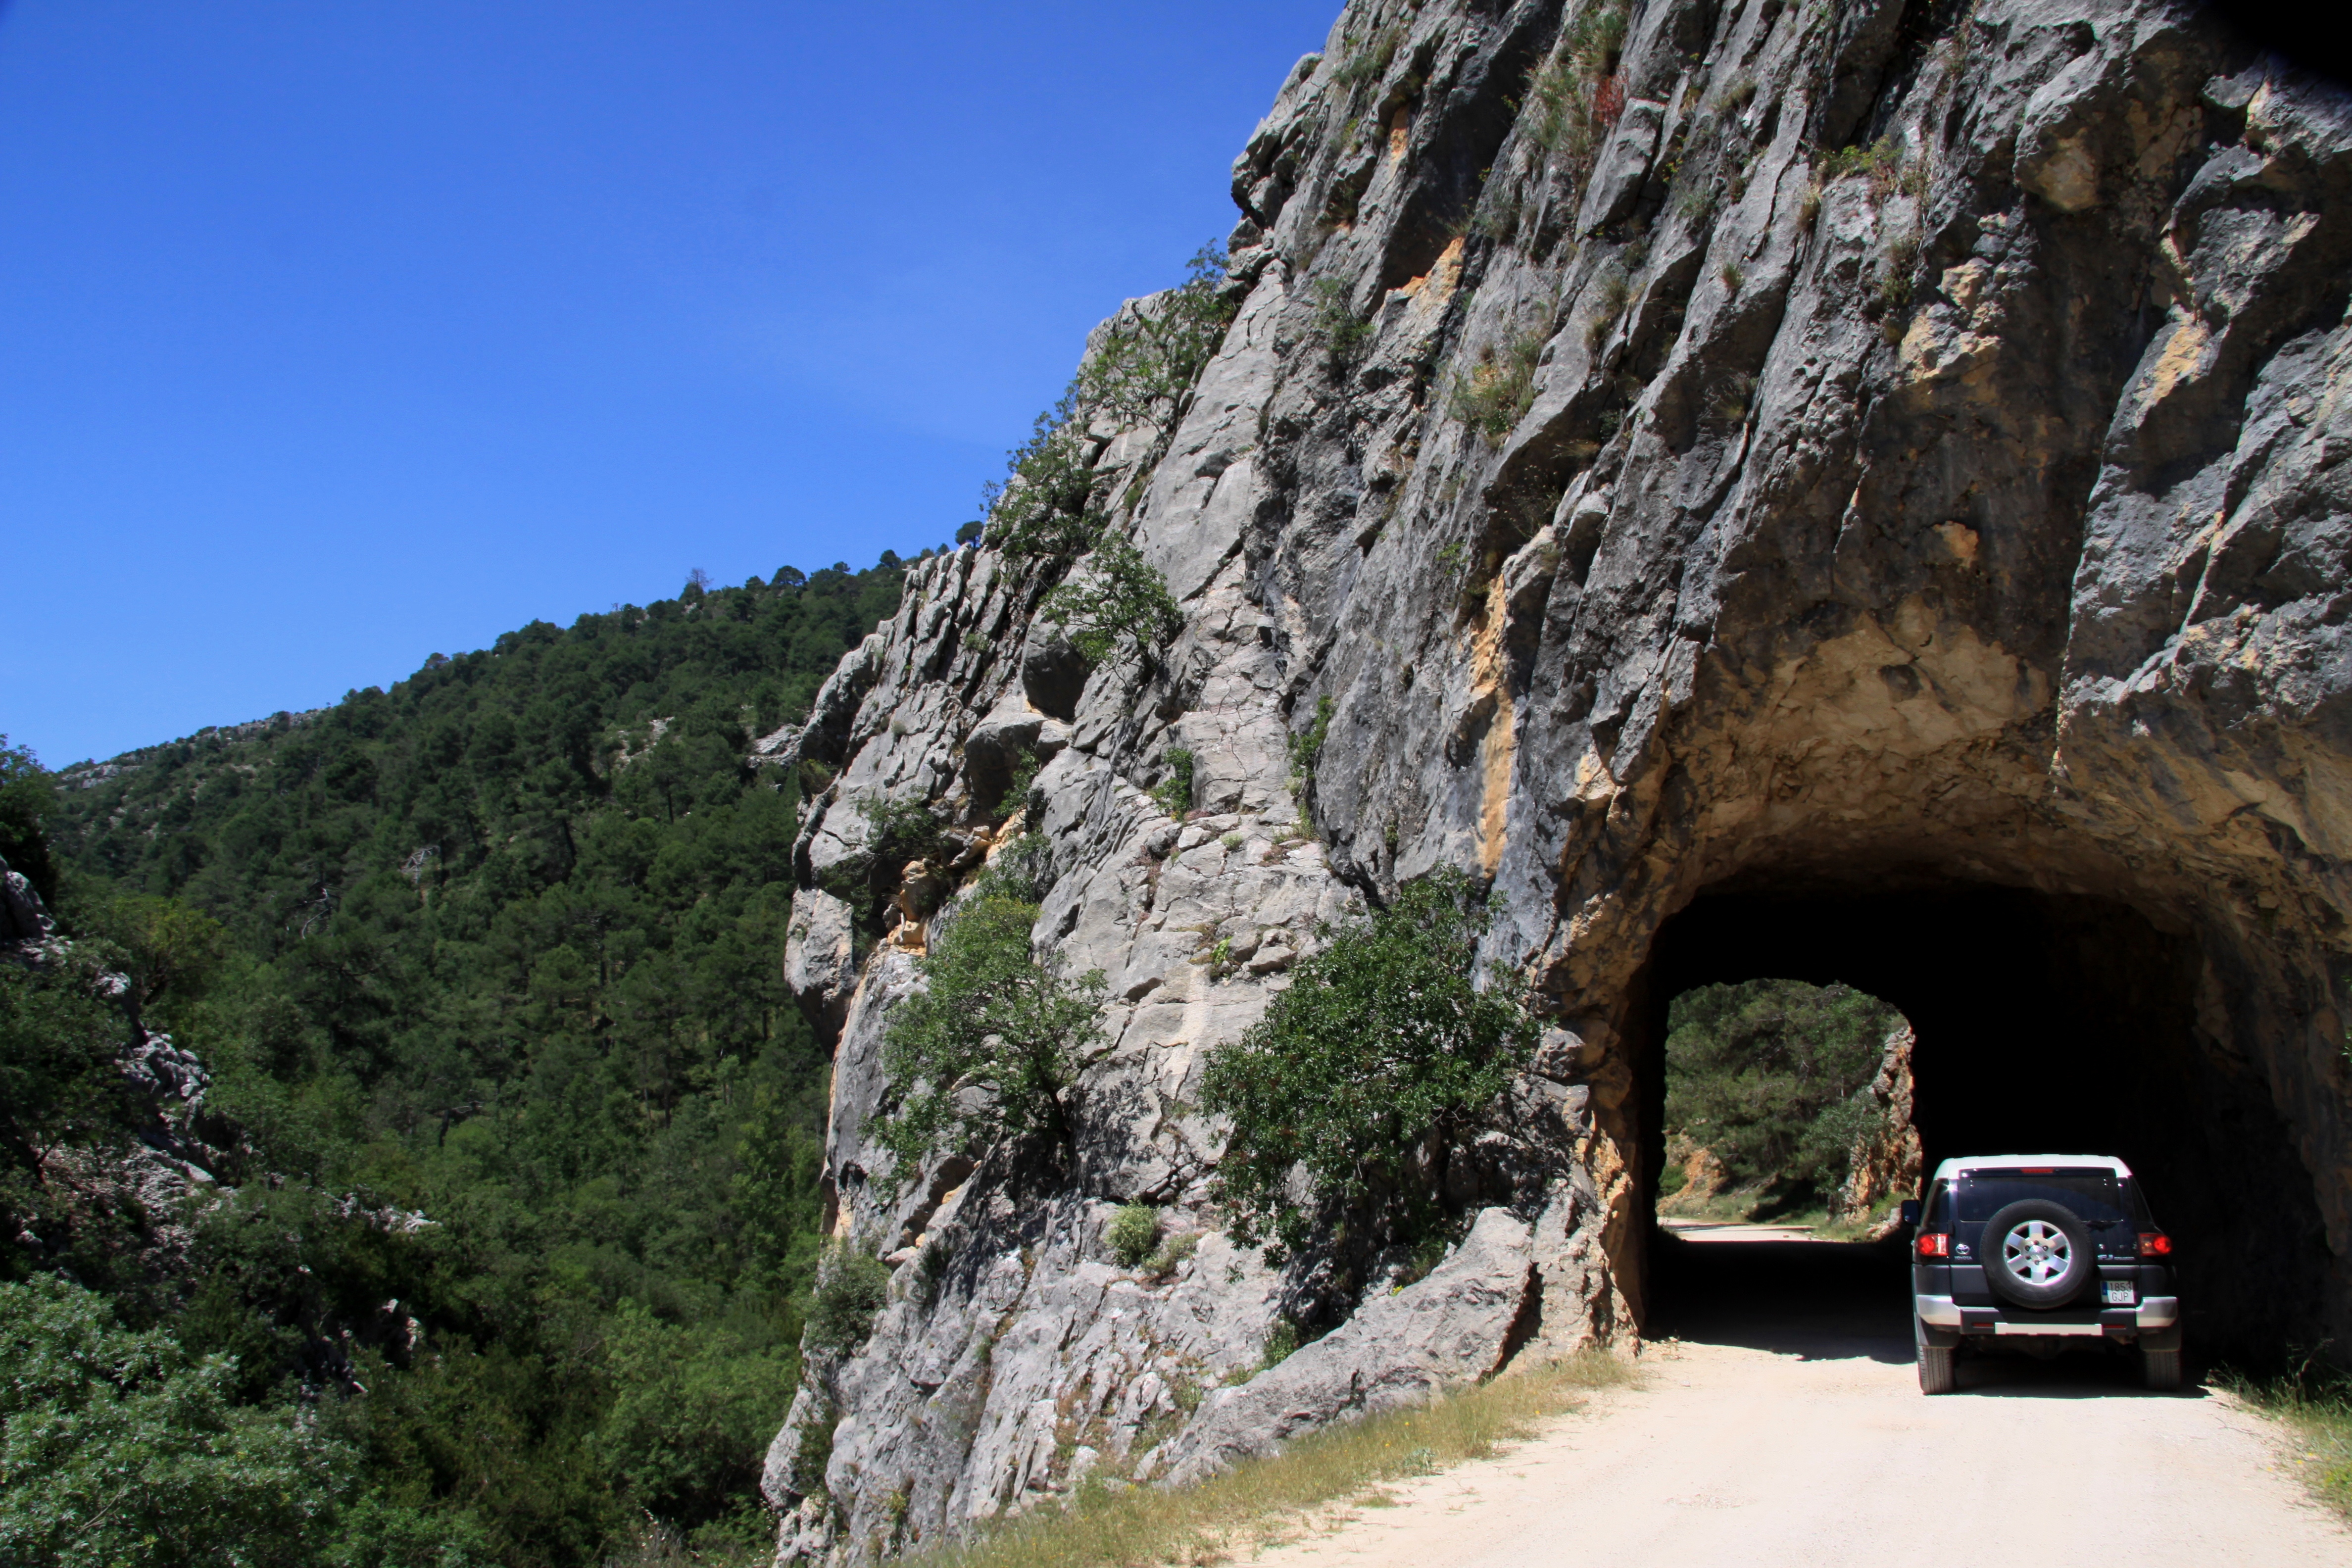 Tunnel_Cazorla_Natural_Park_www.andrewforbes.com